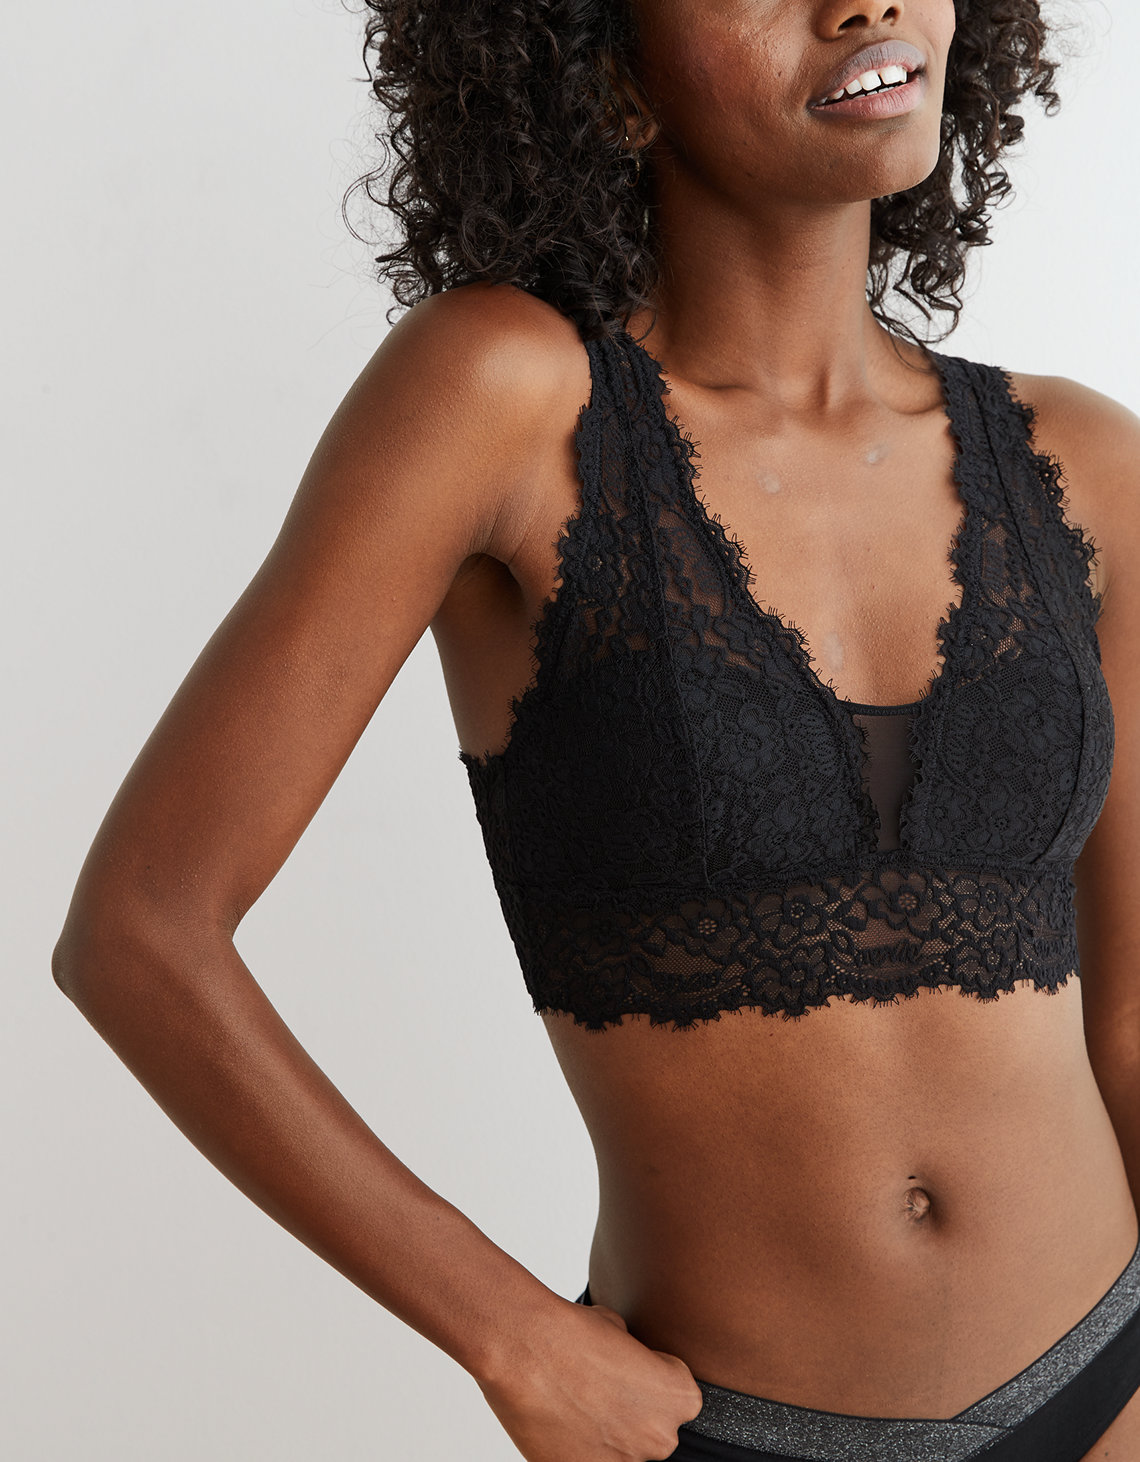 c7409cd6a61 Aerie Romantic Lace Plunge Bralette. Placeholder image. Product Image